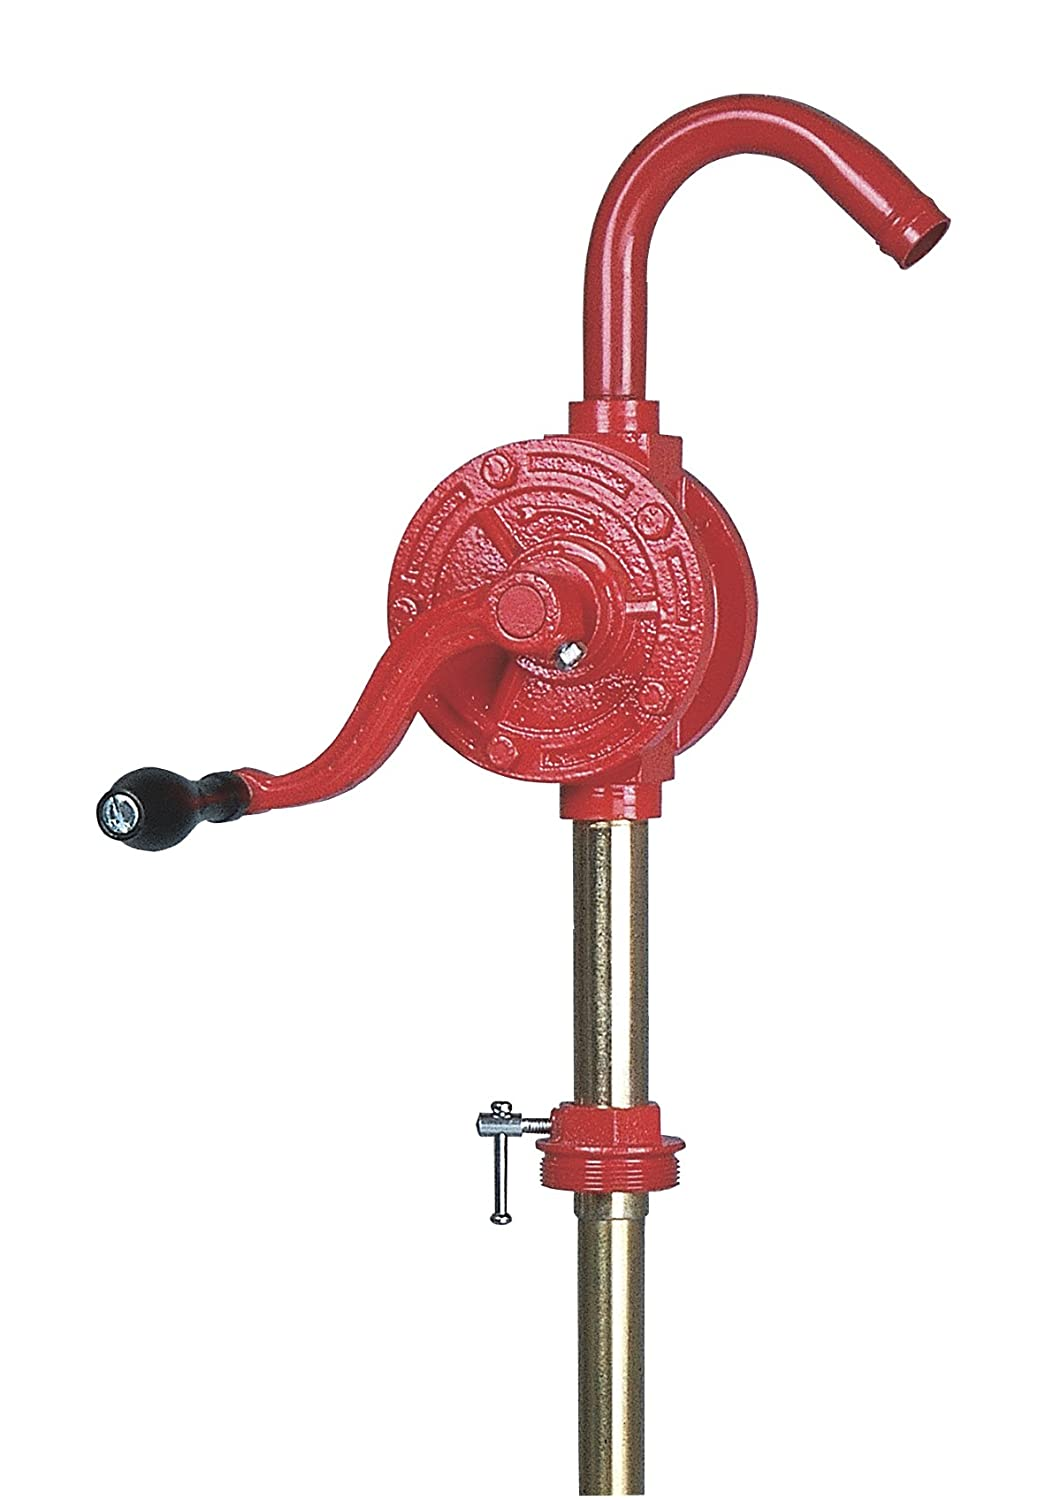 Groz Rotary Barrel Pump | Dual Directional | Cast Iron | 1-inch Pump Inlet | NBR Seals | Steel Discharge Spout | 3-piece Rigid Suction Tube (44052)